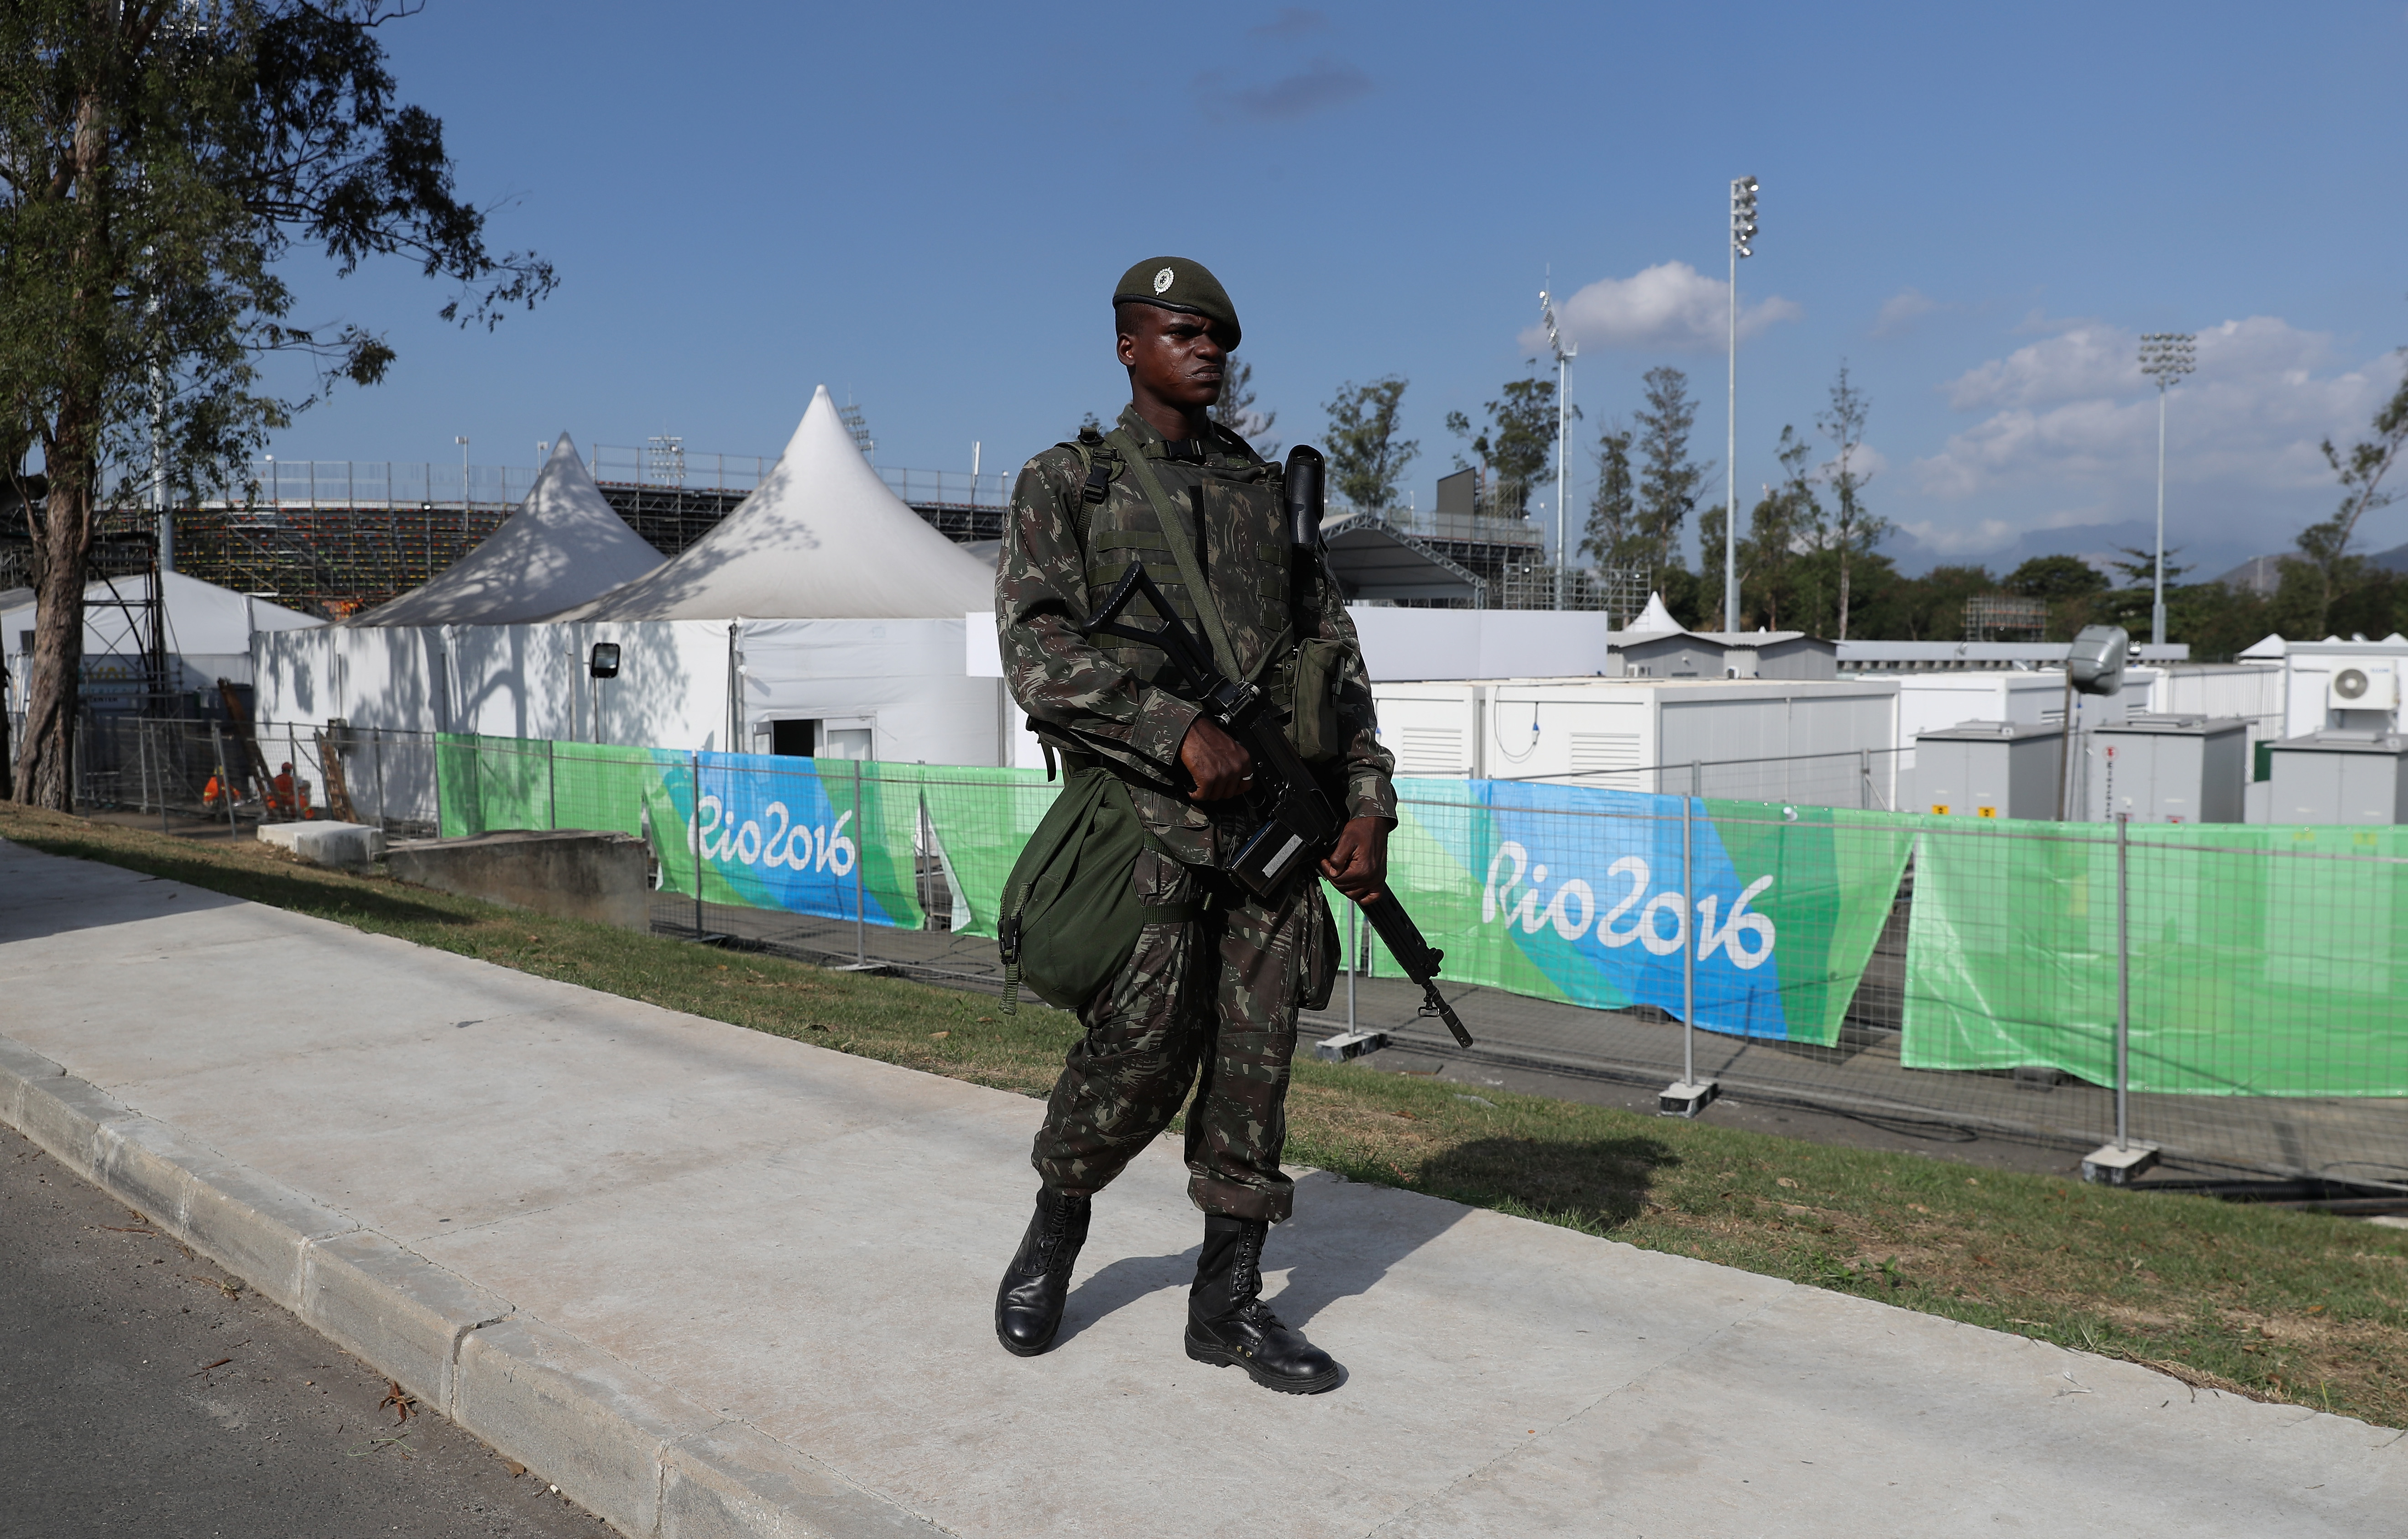 A soldier patrols the perimeter fence around the Deodora Olympic sports complex during the build up to the Rio Olympic Games on July 30, 2016 in Rio de Janeiro.